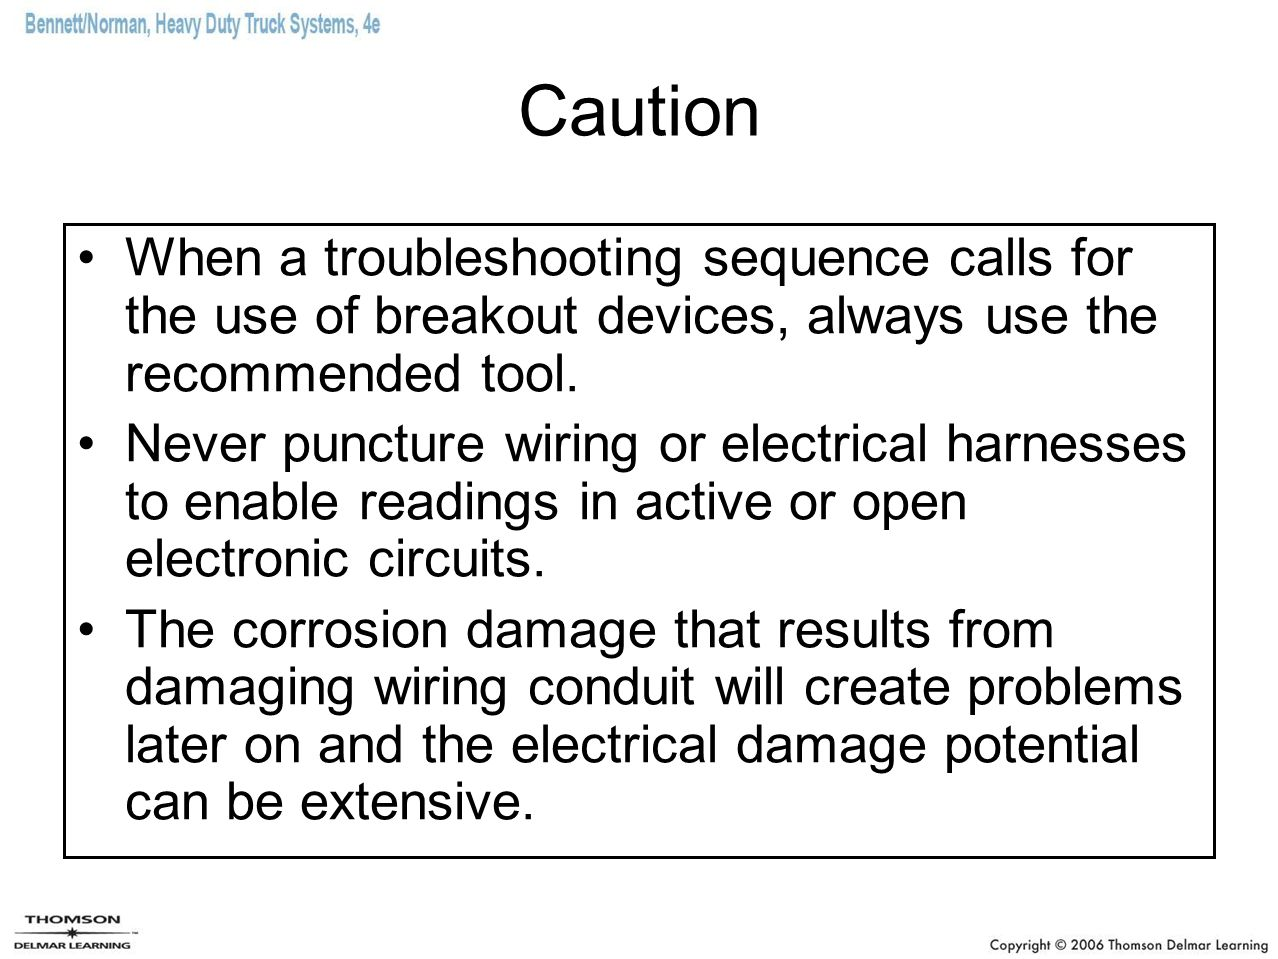 Caution When a troubleshooting sequence calls for the use of breakout devices, always use the recommended tool.